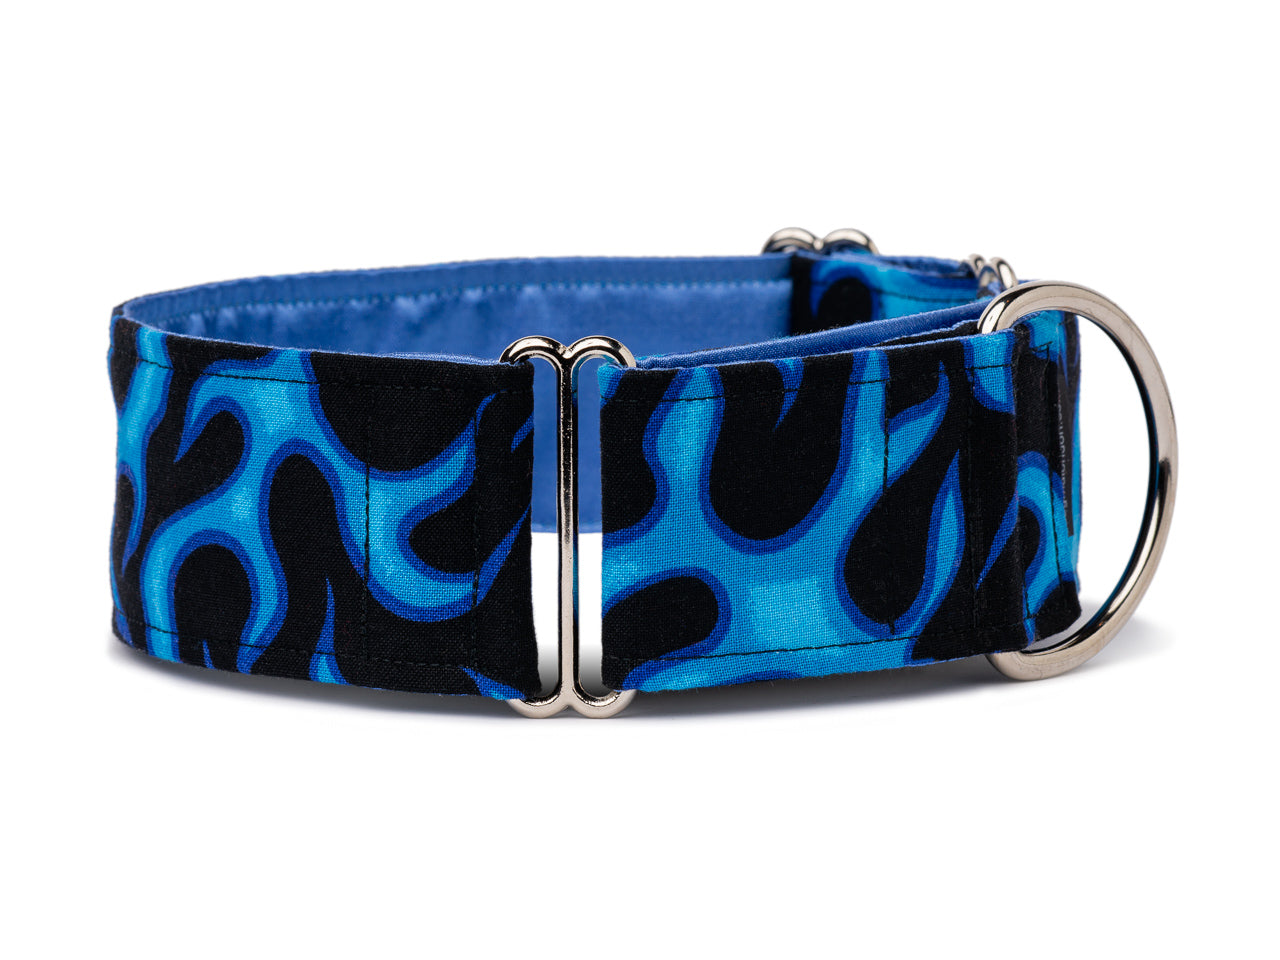 Sizzling blue flames on black will highlight your pup's bright personality and feisty attitude!